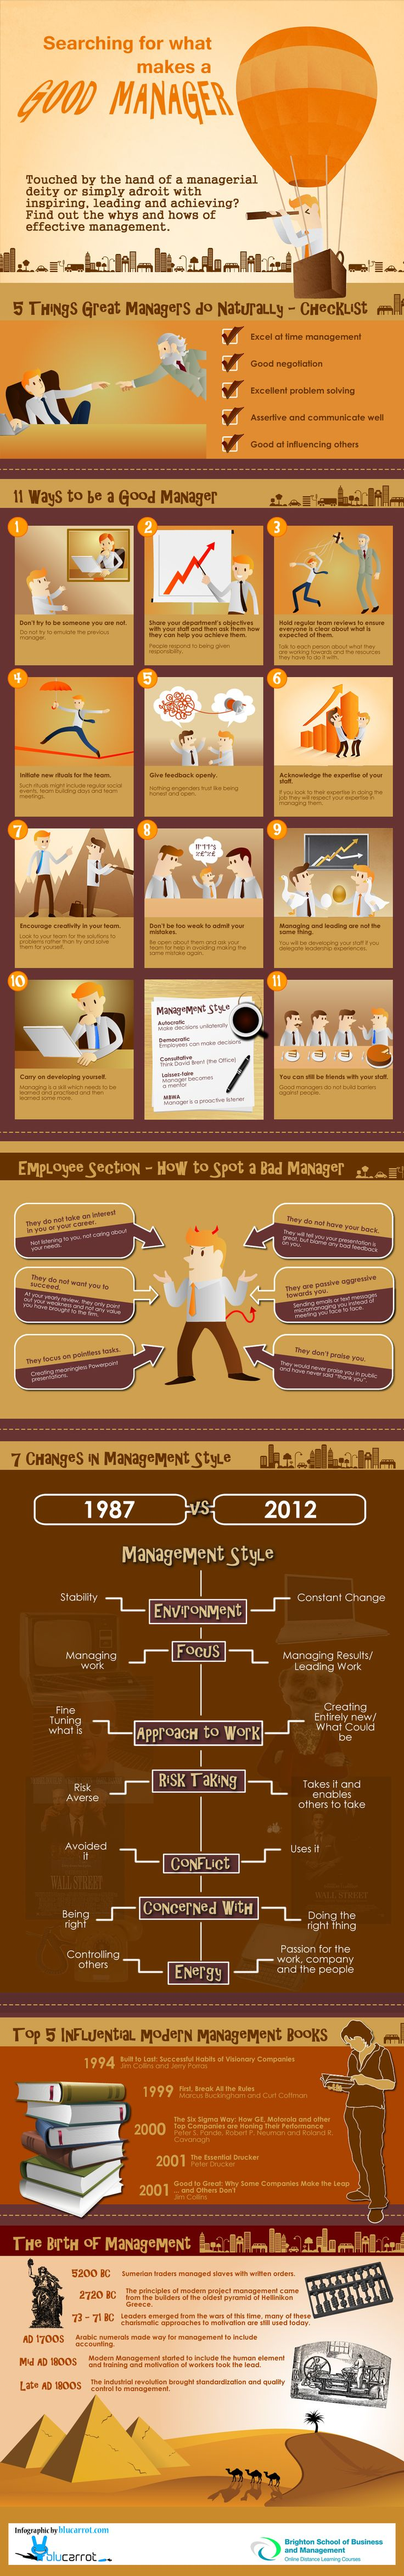 Searching for what makes a good manager #Infographic  Was gute Manager auszeichnet #Infografik #Management #Consulting